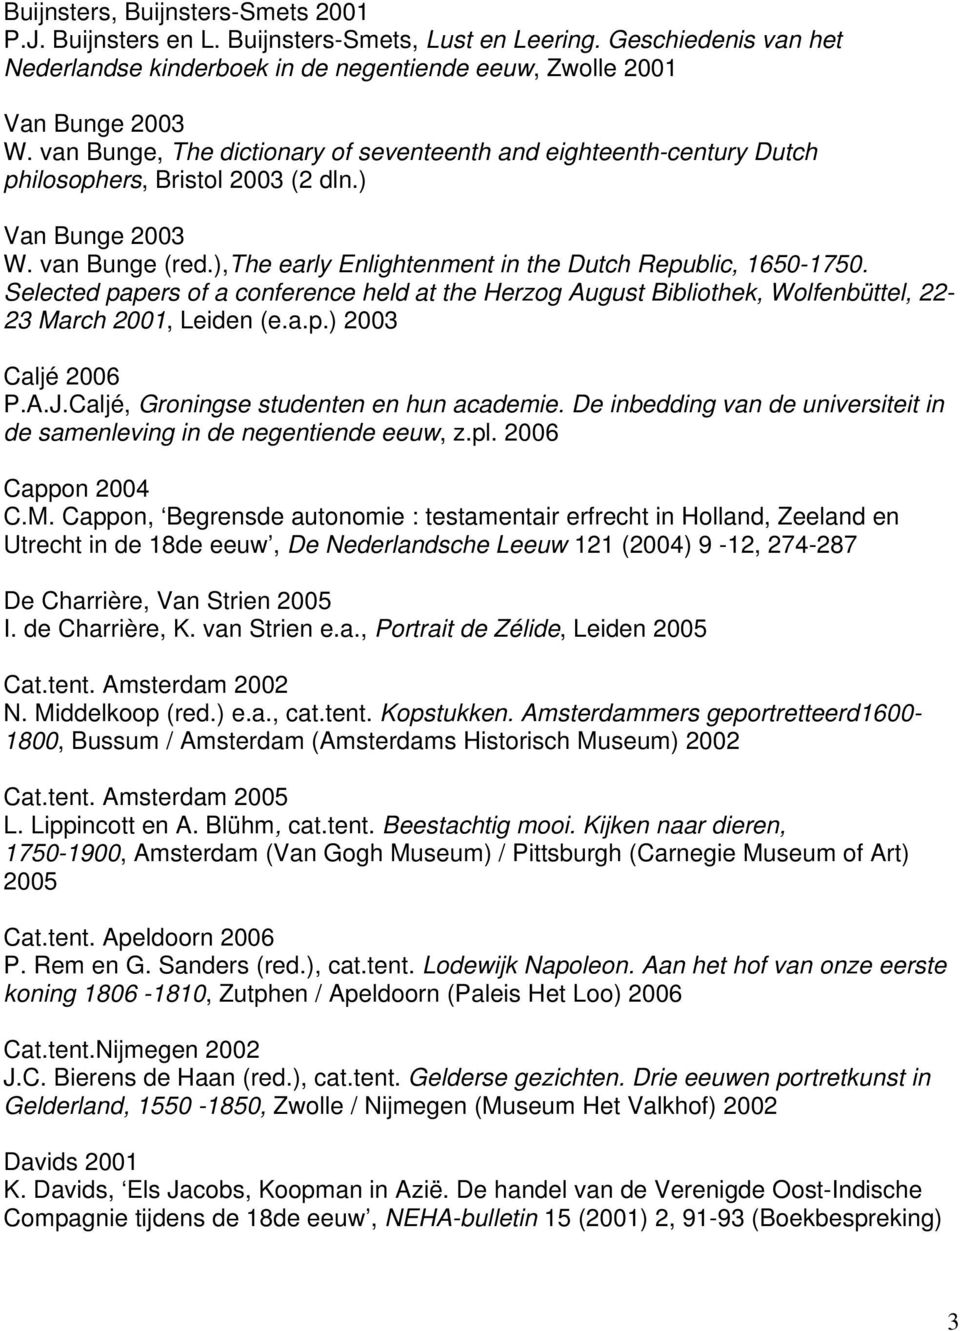 Selected papers of a conference held at the Herzog August Bibliothek, Wolfenbüttel, 22-23 March 2001, Leiden (e.a.p.) 2003 Caljé 2006 P.A.J.Caljé, Groningse studenten en hun academie.